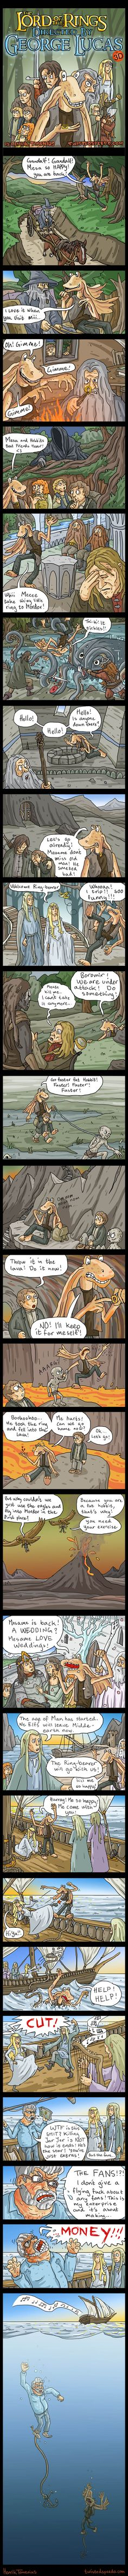 The Lord Of The Rings – Directed by George Lucas